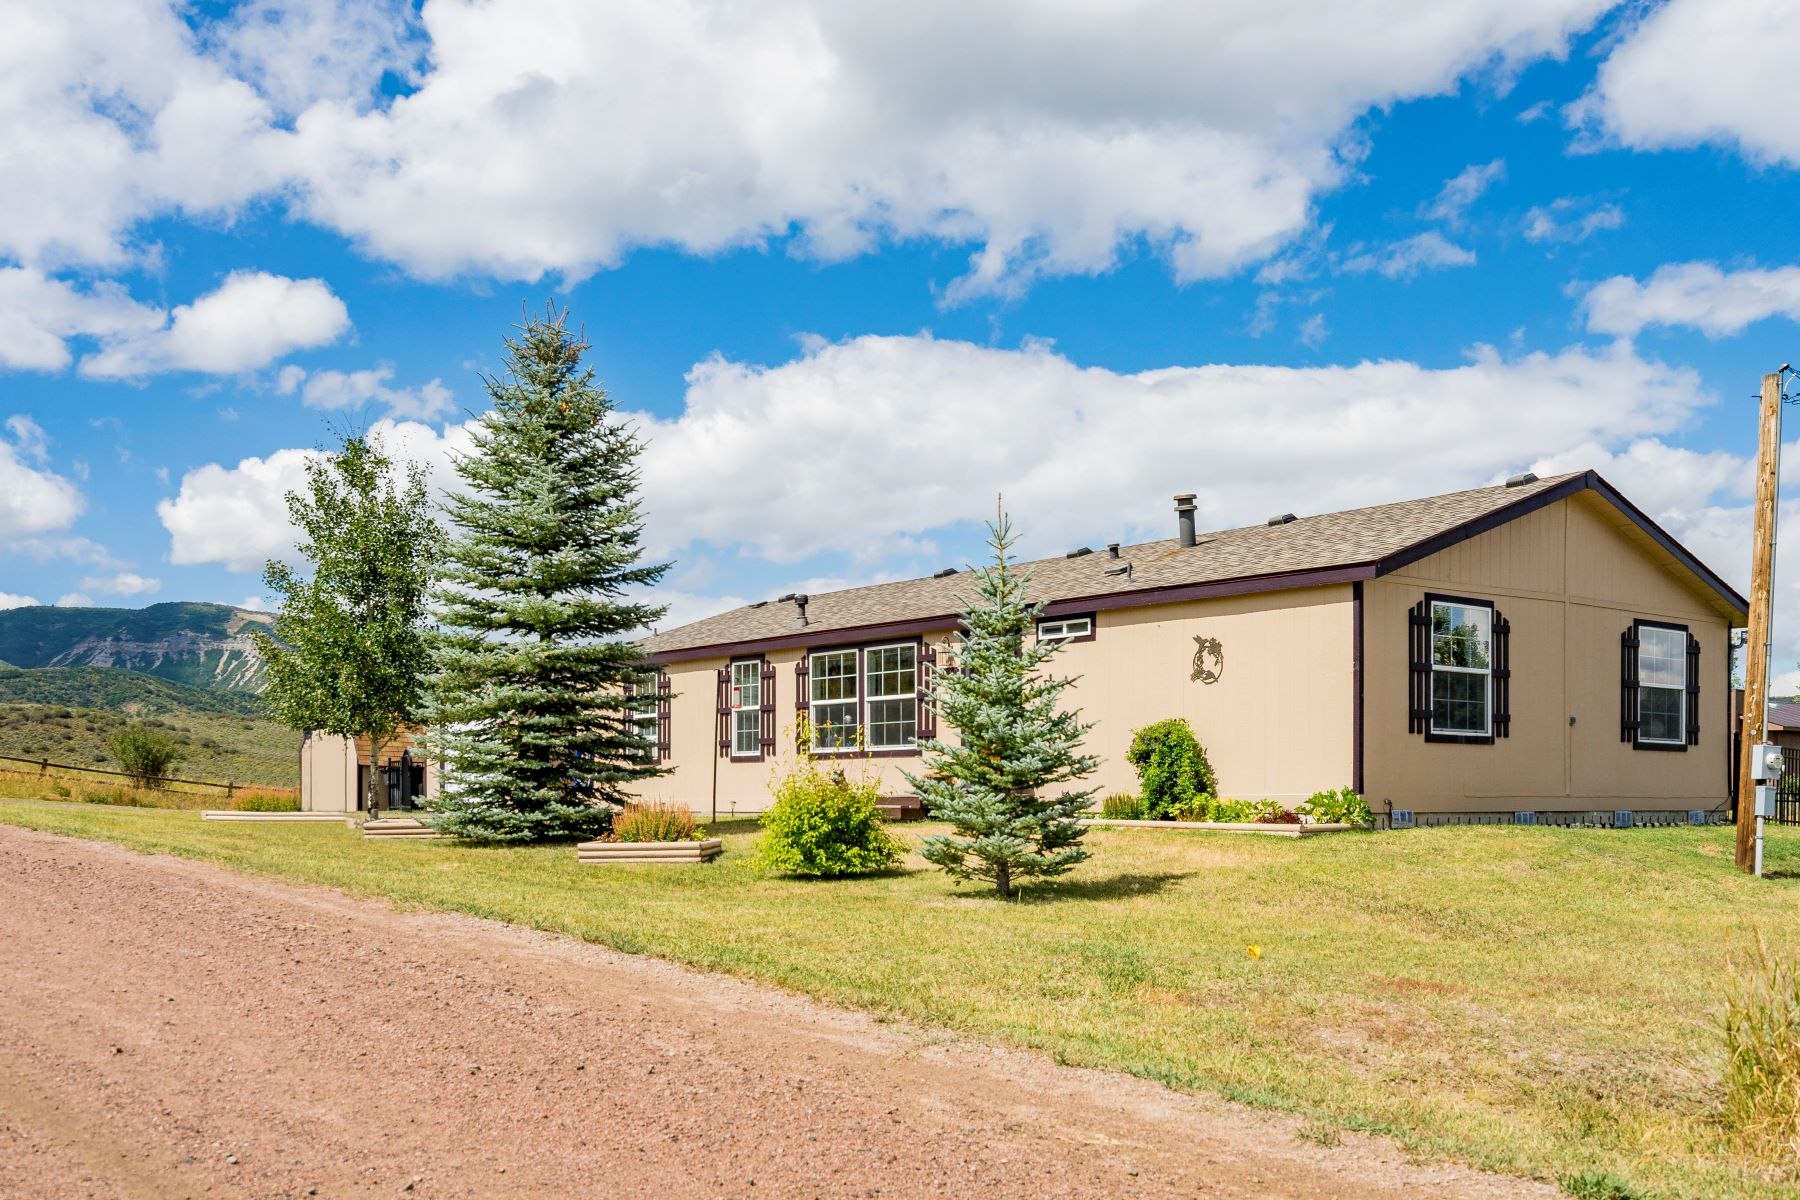 Single Family Homes for Active at A Gem in Phippsburg 21410 5th Avenue Phippsburg, Colorado 80469 United States